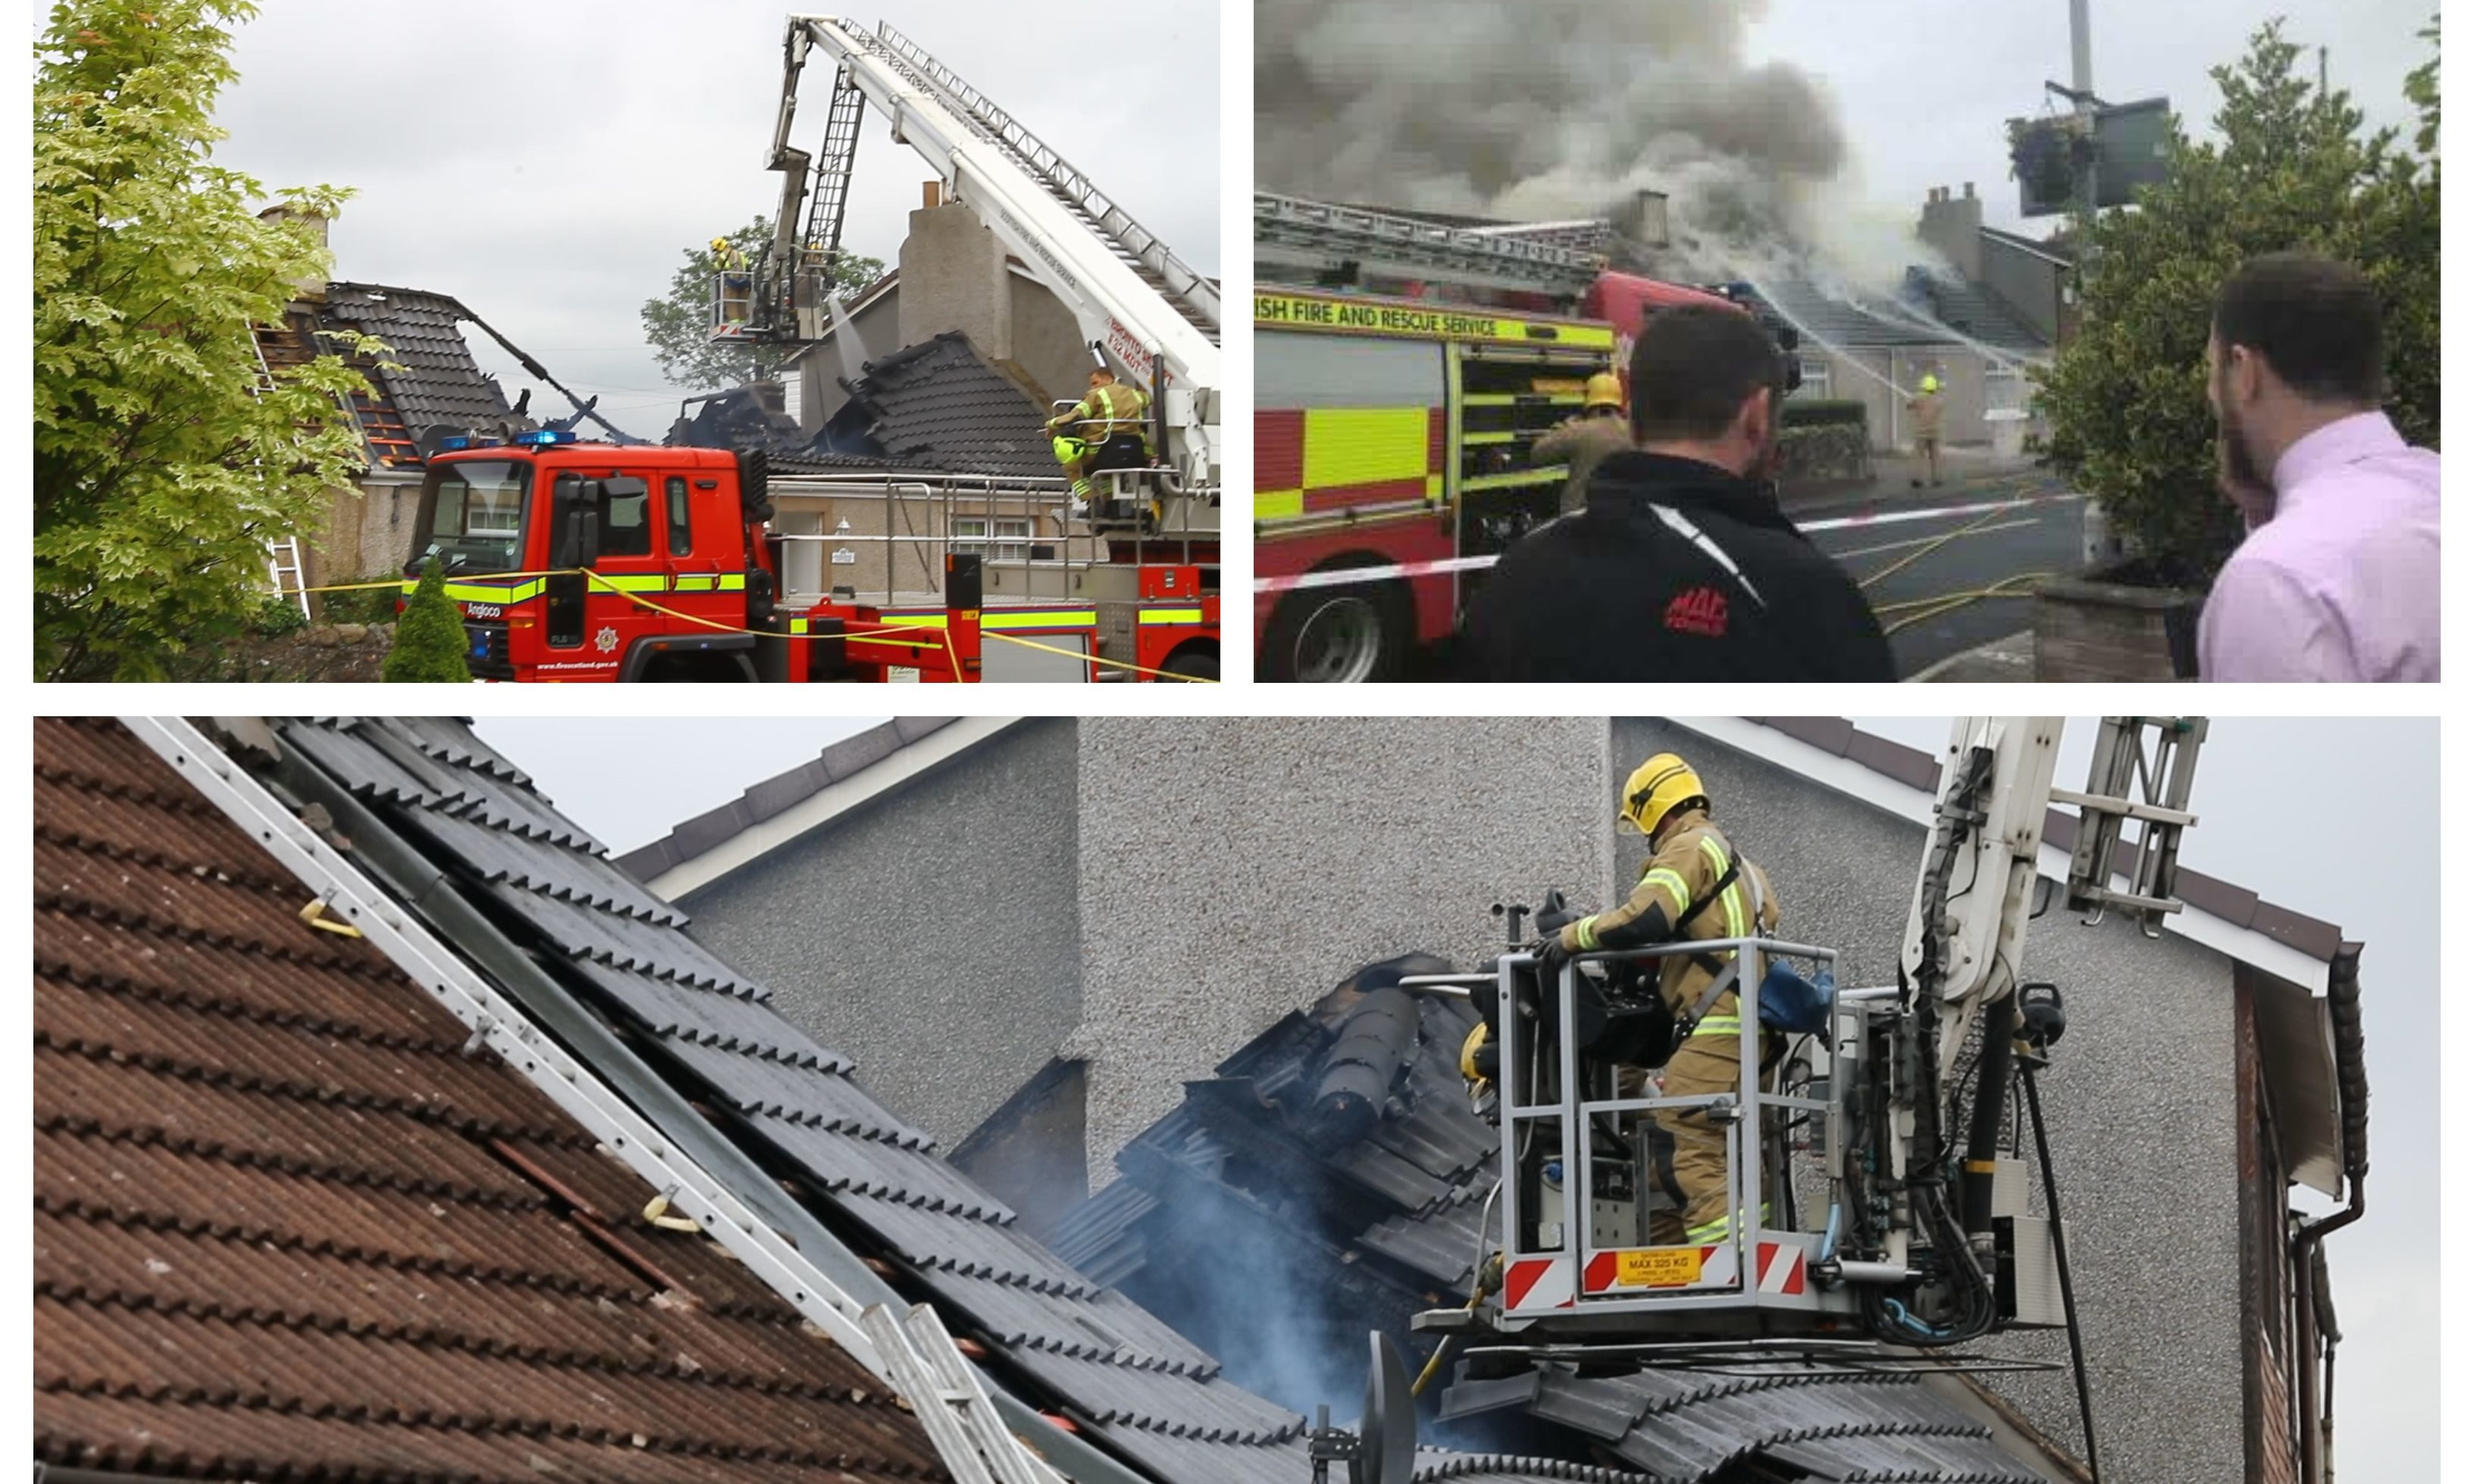 Firefighters tackle the Coaltown of Balgonie house blaze.